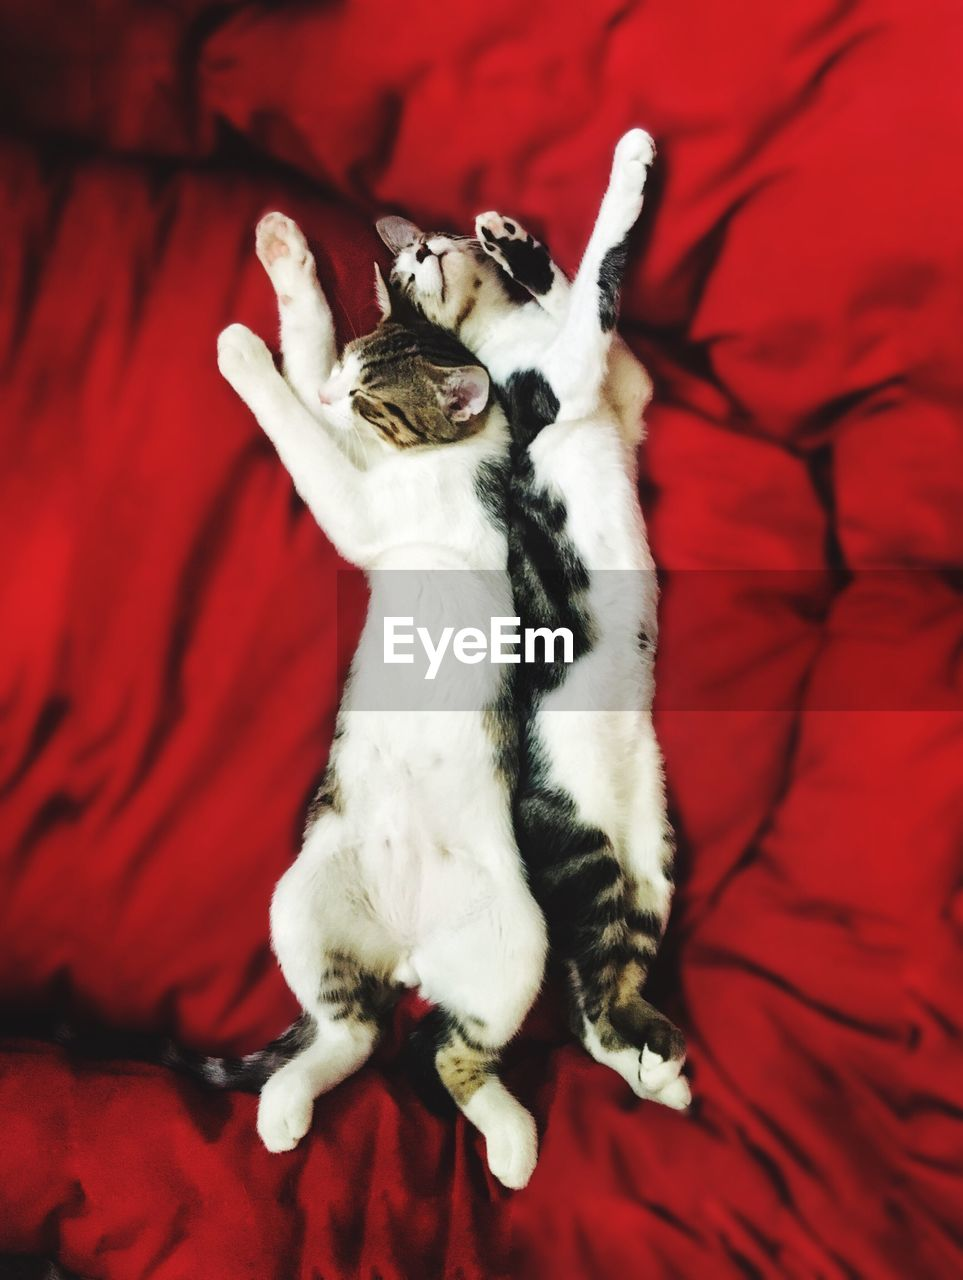 mammal, pets, domestic animals, animal themes, domestic, animal, one animal, vertebrate, red, furniture, bed, indoors, lying down, cat, domestic cat, no people, relaxation, feline, high angle view, white color, mouth open